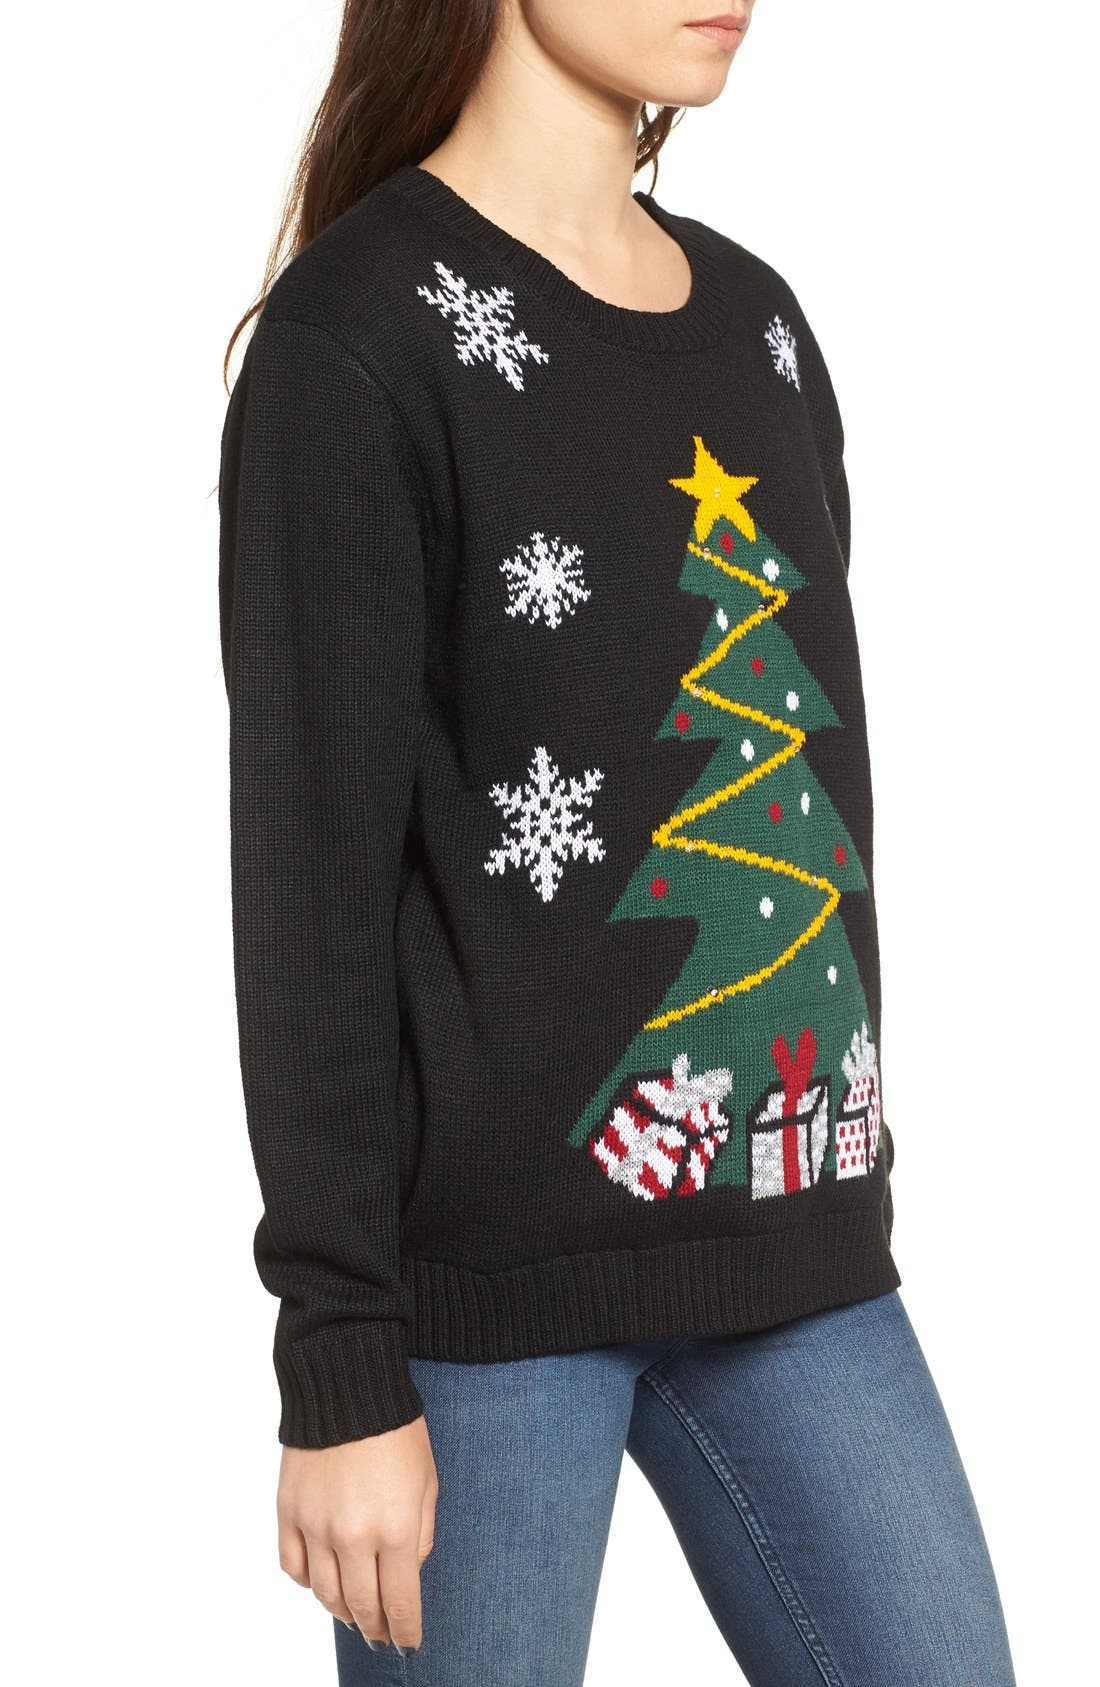 Alternate Image 3  - Love by Design Light-Up Tree Christmas Sweater